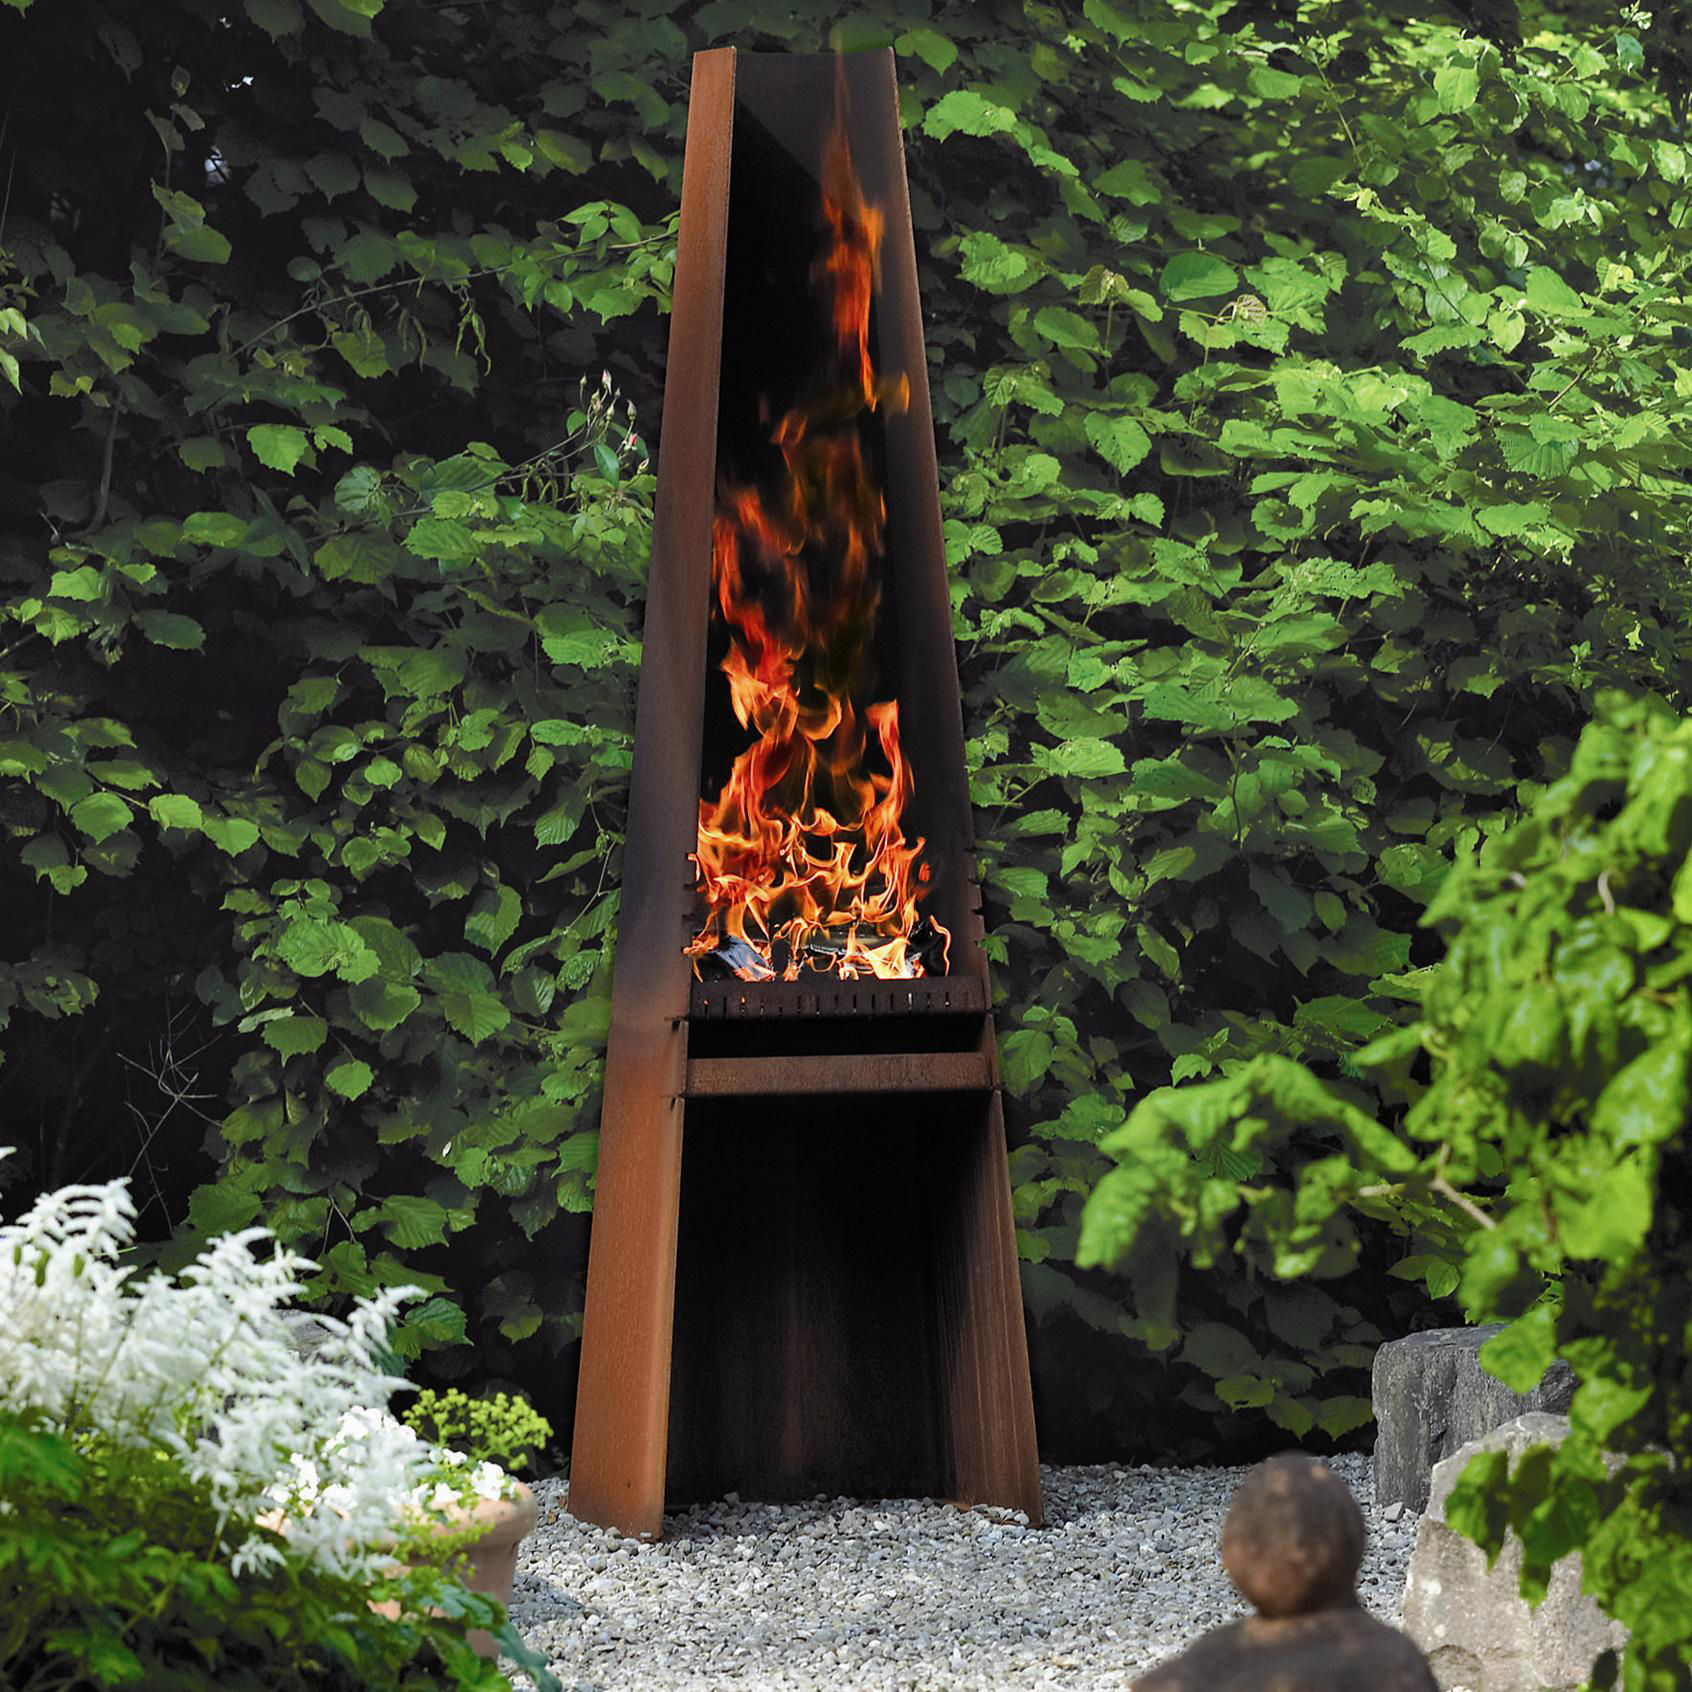 Rais gizeh outdoor wood fireplace and grill for sale for Where to buy outdoor fireplace